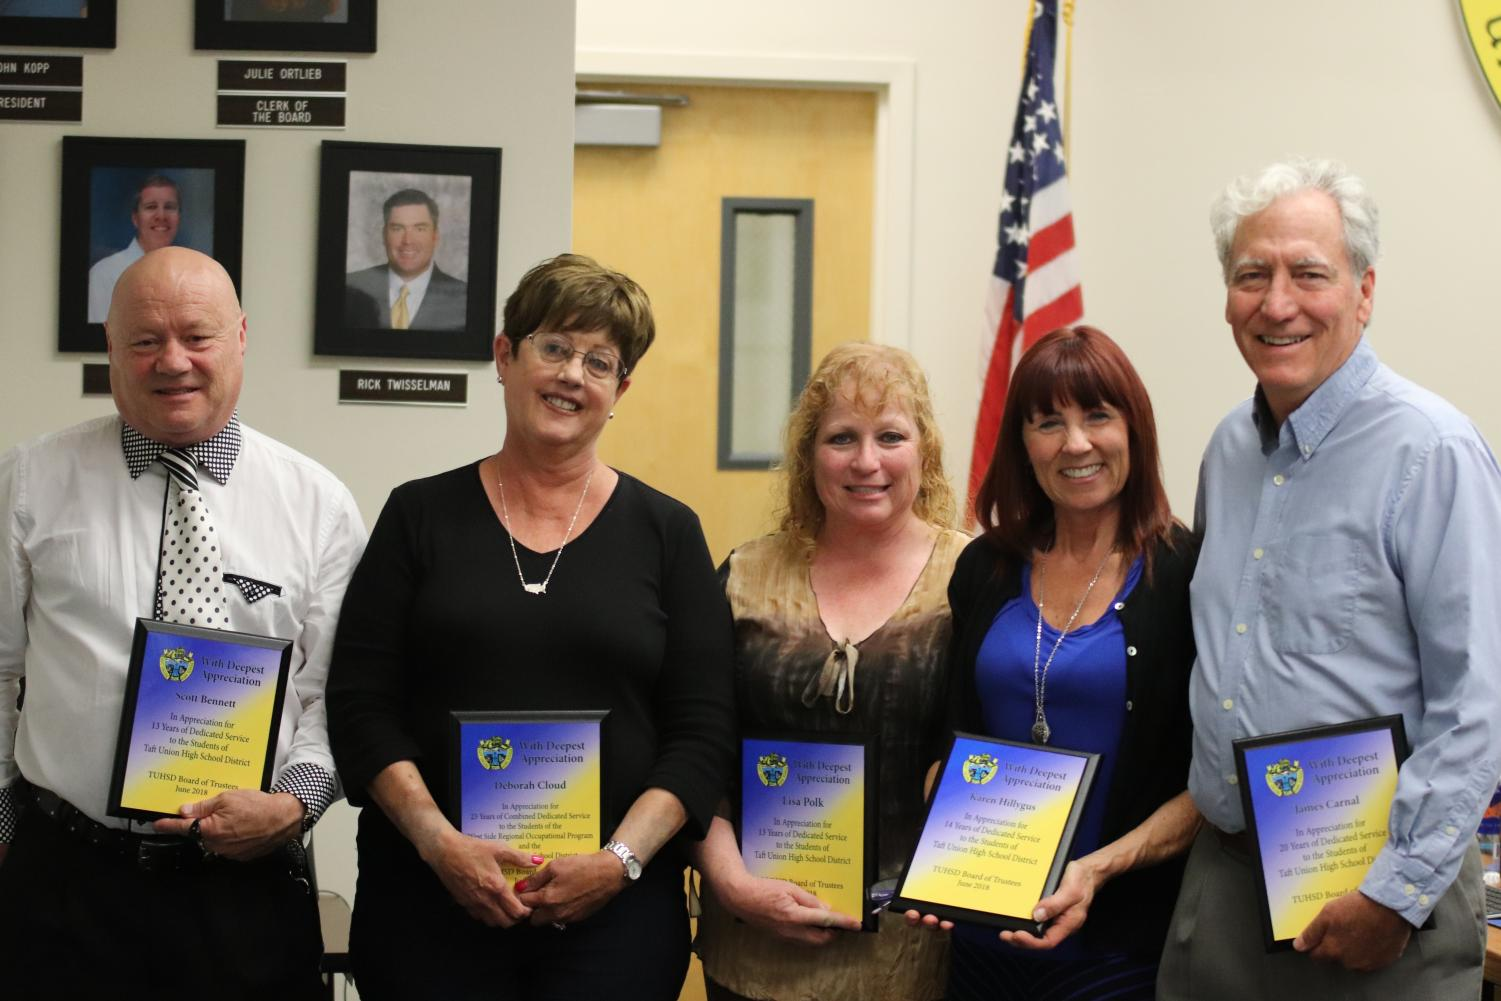 Scott Bennett, Debbie Cloud, Lisa Polk, Karen Hillygus, and Jim Carnal received plaques representing years of dedication to teaching at the Taft Union High School District during the May board meeting  (not present/pictured: David Skowron, Julee Skowron, Bennett Johnson, Gene Conners, and Harold Heiter)